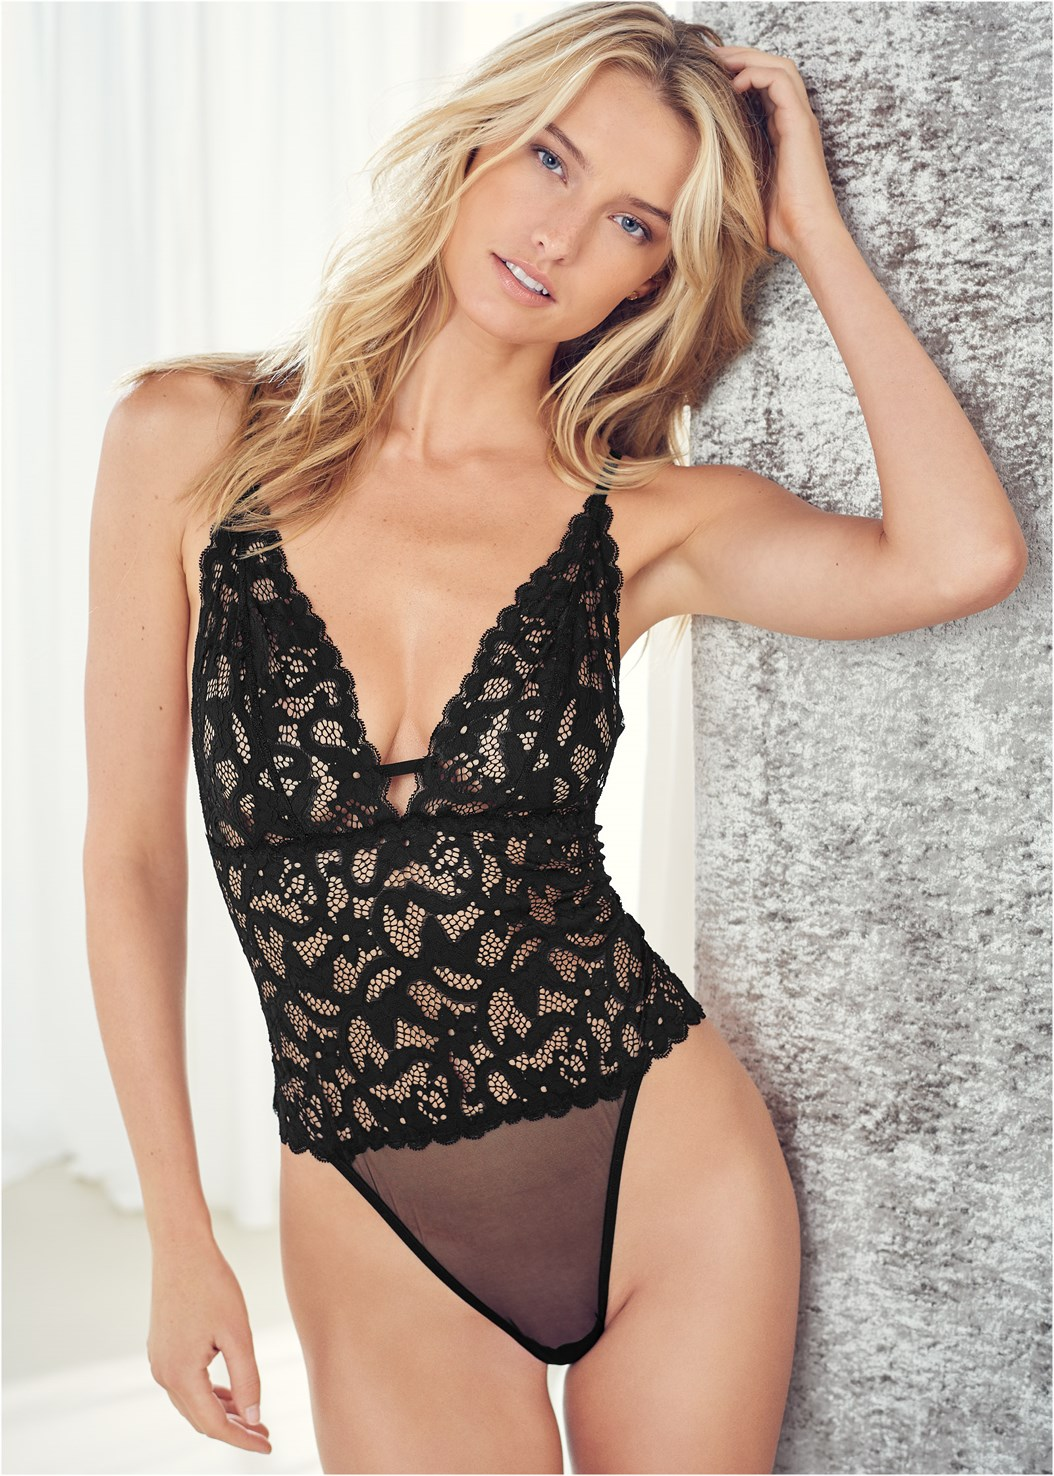 Sheer Lace Bodysuit,High Heel Strappy Sandals